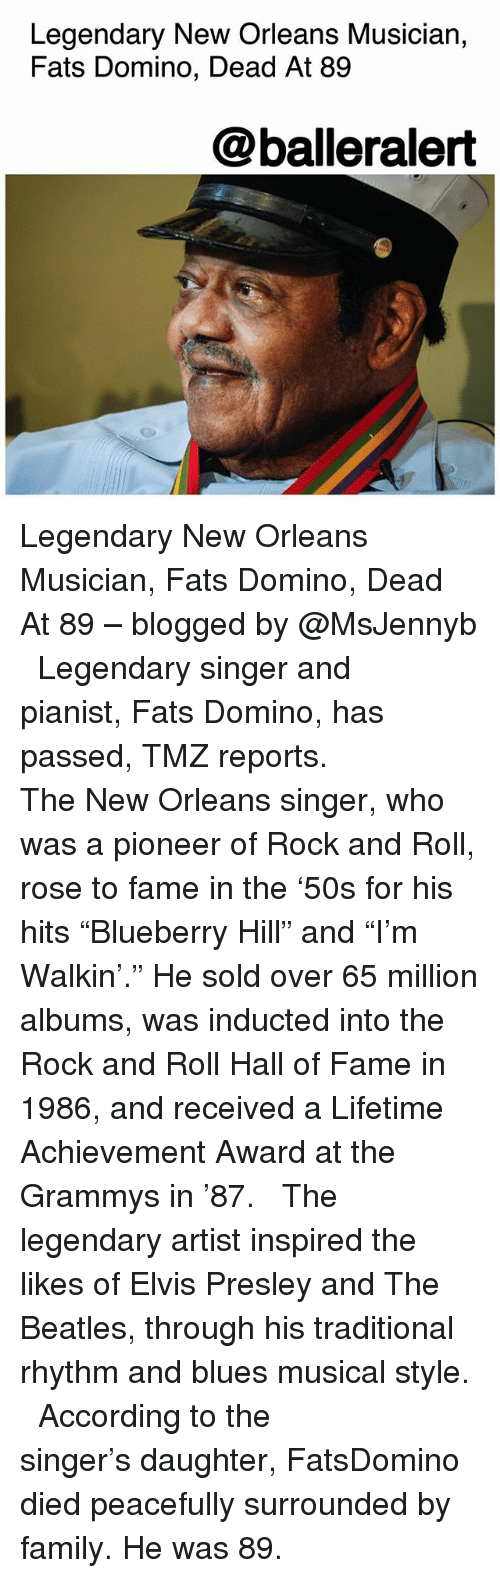 """Elvis Presley: Legendary New Orleans Musician,  Fats Domino, Dead At 89  @balleralert Legendary New Orleans Musician, Fats Domino, Dead At 89 – blogged by @MsJennyb ⠀⠀⠀⠀⠀⠀⠀ ⠀⠀⠀⠀⠀⠀⠀ Legendary singer and pianist, Fats Domino, has passed, TMZ reports. ⠀⠀⠀⠀⠀⠀⠀ ⠀⠀⠀⠀⠀⠀⠀ The New Orleans singer, who was a pioneer of Rock and Roll, rose to fame in the '50s for his hits """"Blueberry Hill"""" and """"I'm Walkin'."""" He sold over 65 million albums, was inducted into the Rock and Roll Hall of Fame in 1986, and received a Lifetime Achievement Award at the Grammys in '87. ⠀⠀⠀⠀⠀⠀⠀ ⠀⠀⠀⠀⠀⠀⠀ The legendary artist inspired the likes of Elvis Presley and The Beatles, through his traditional rhythm and blues musical style. ⠀⠀⠀⠀⠀⠀⠀ ⠀⠀⠀⠀⠀⠀⠀ According to the singer's daughter, FatsDomino died peacefully surrounded by family. He was 89."""